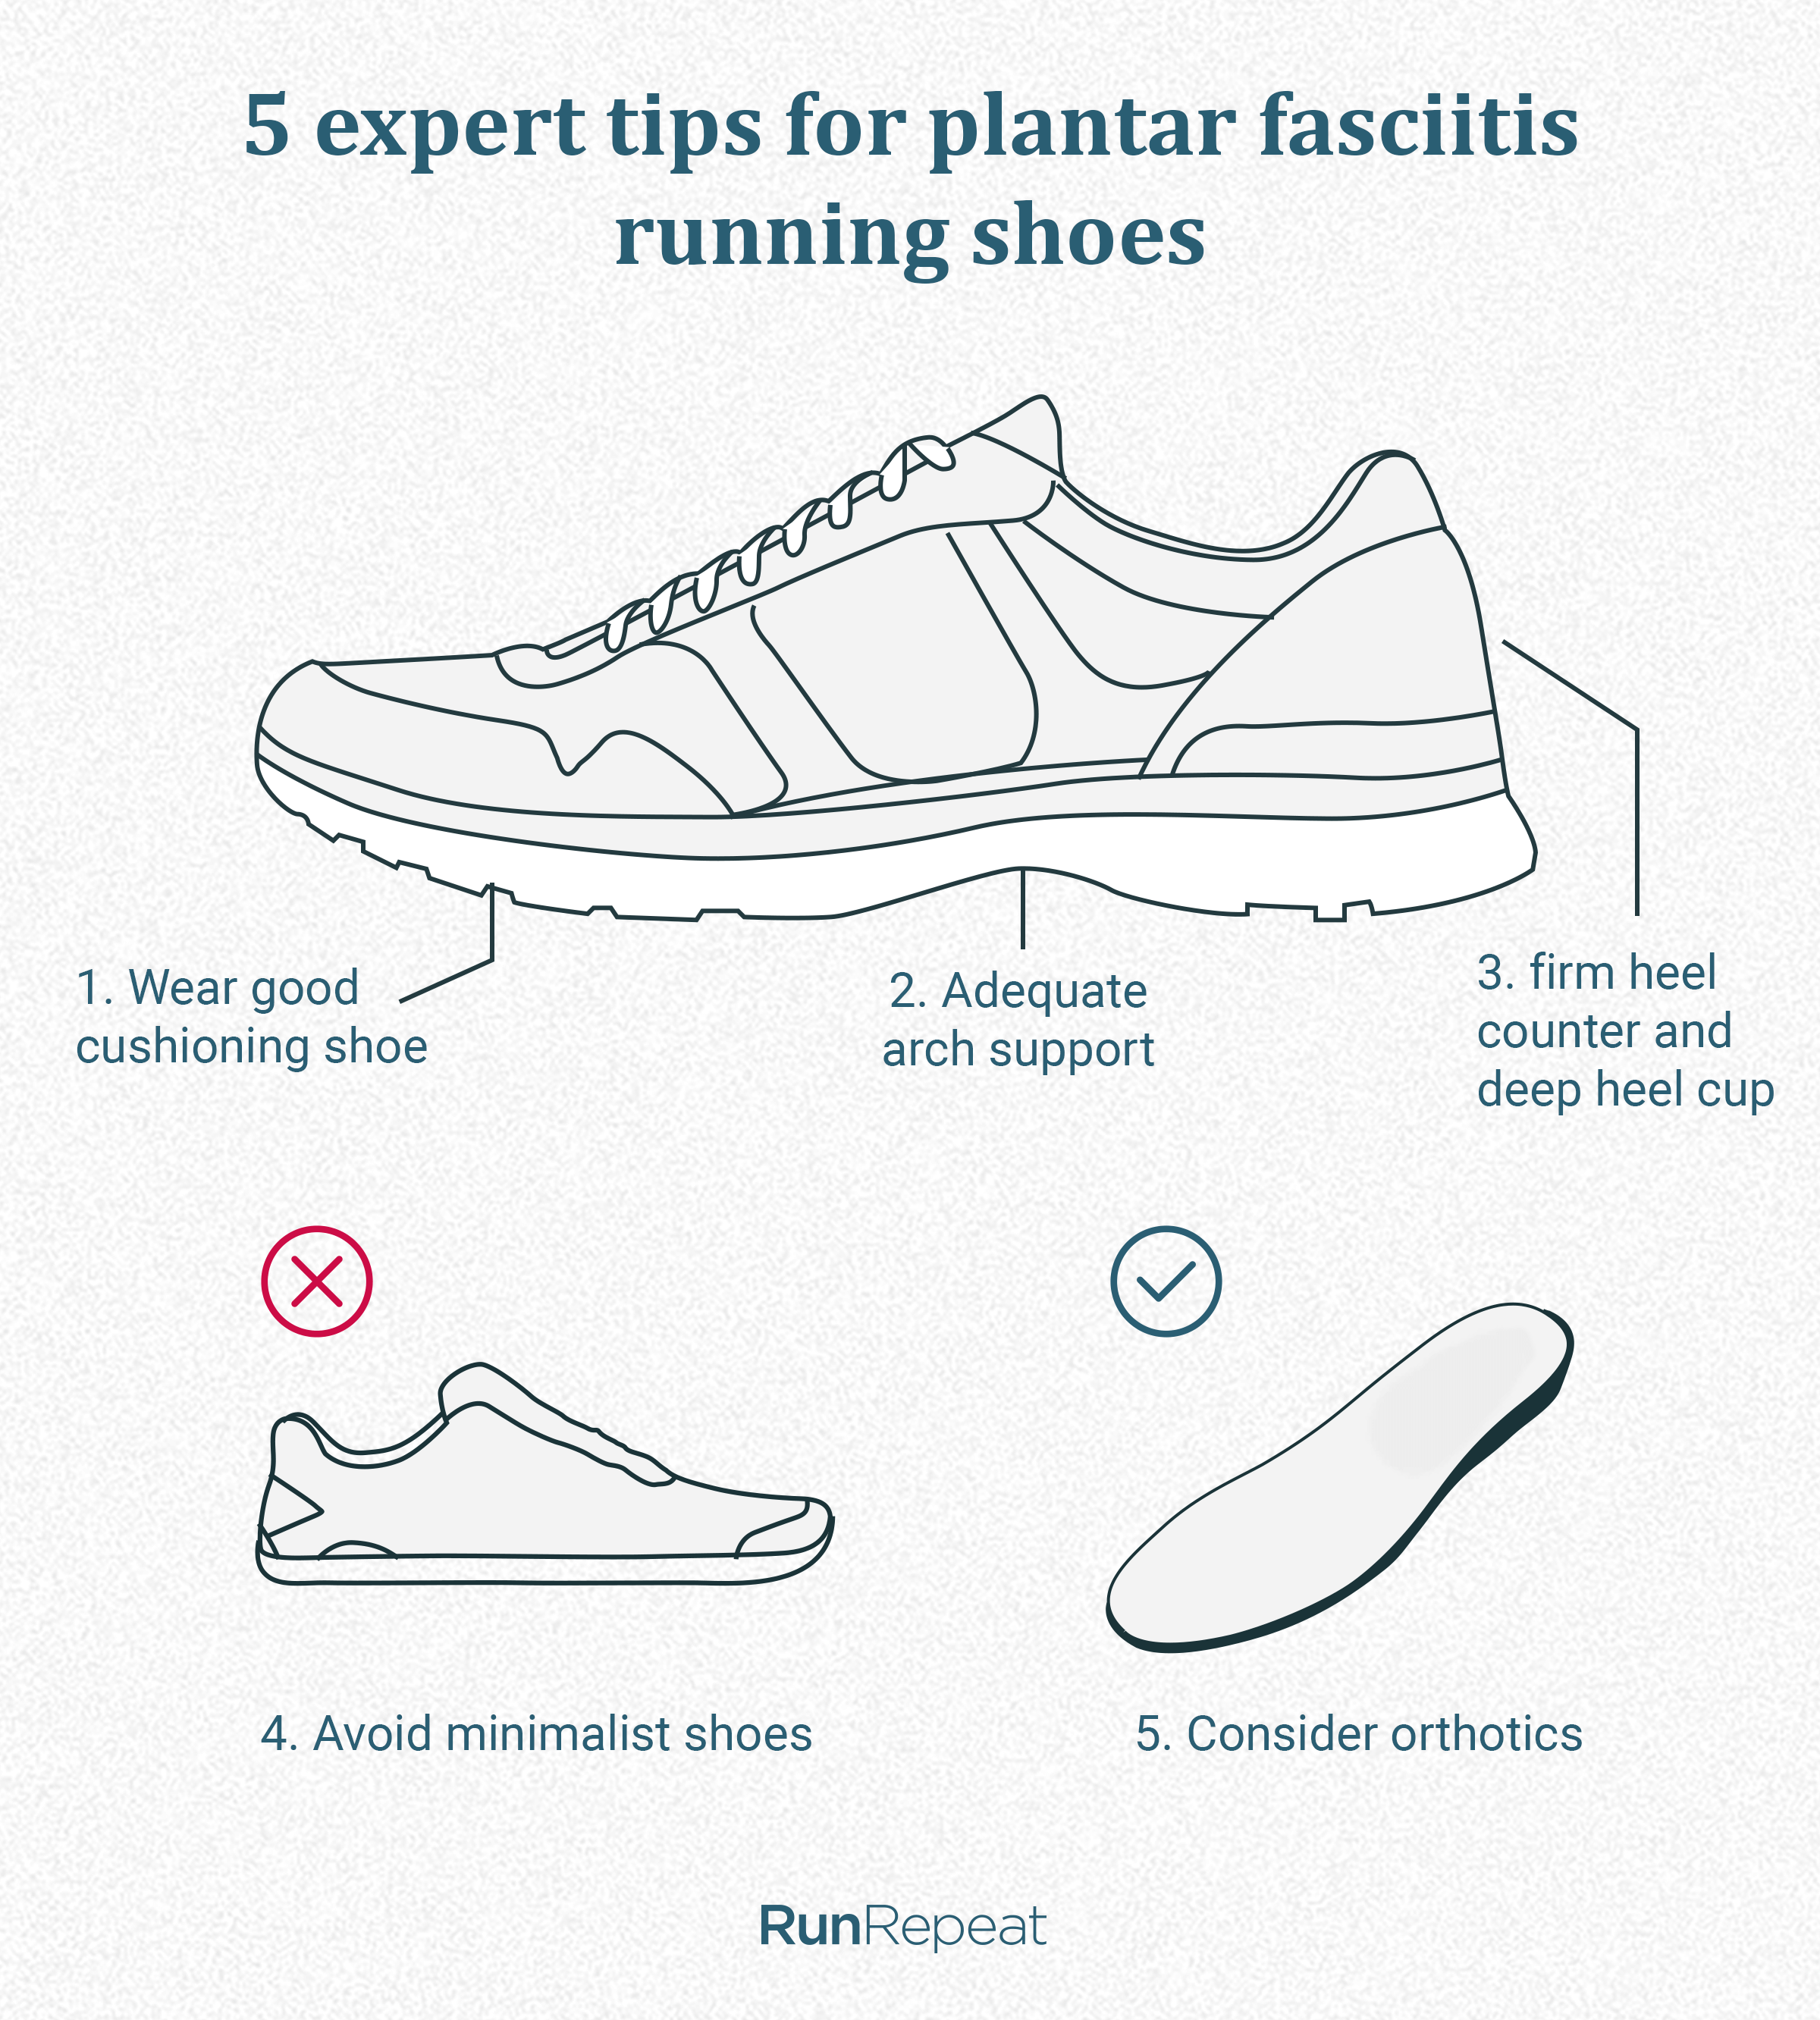 5-expert-tips-for-plantar-fasciitis-running-shoes.png